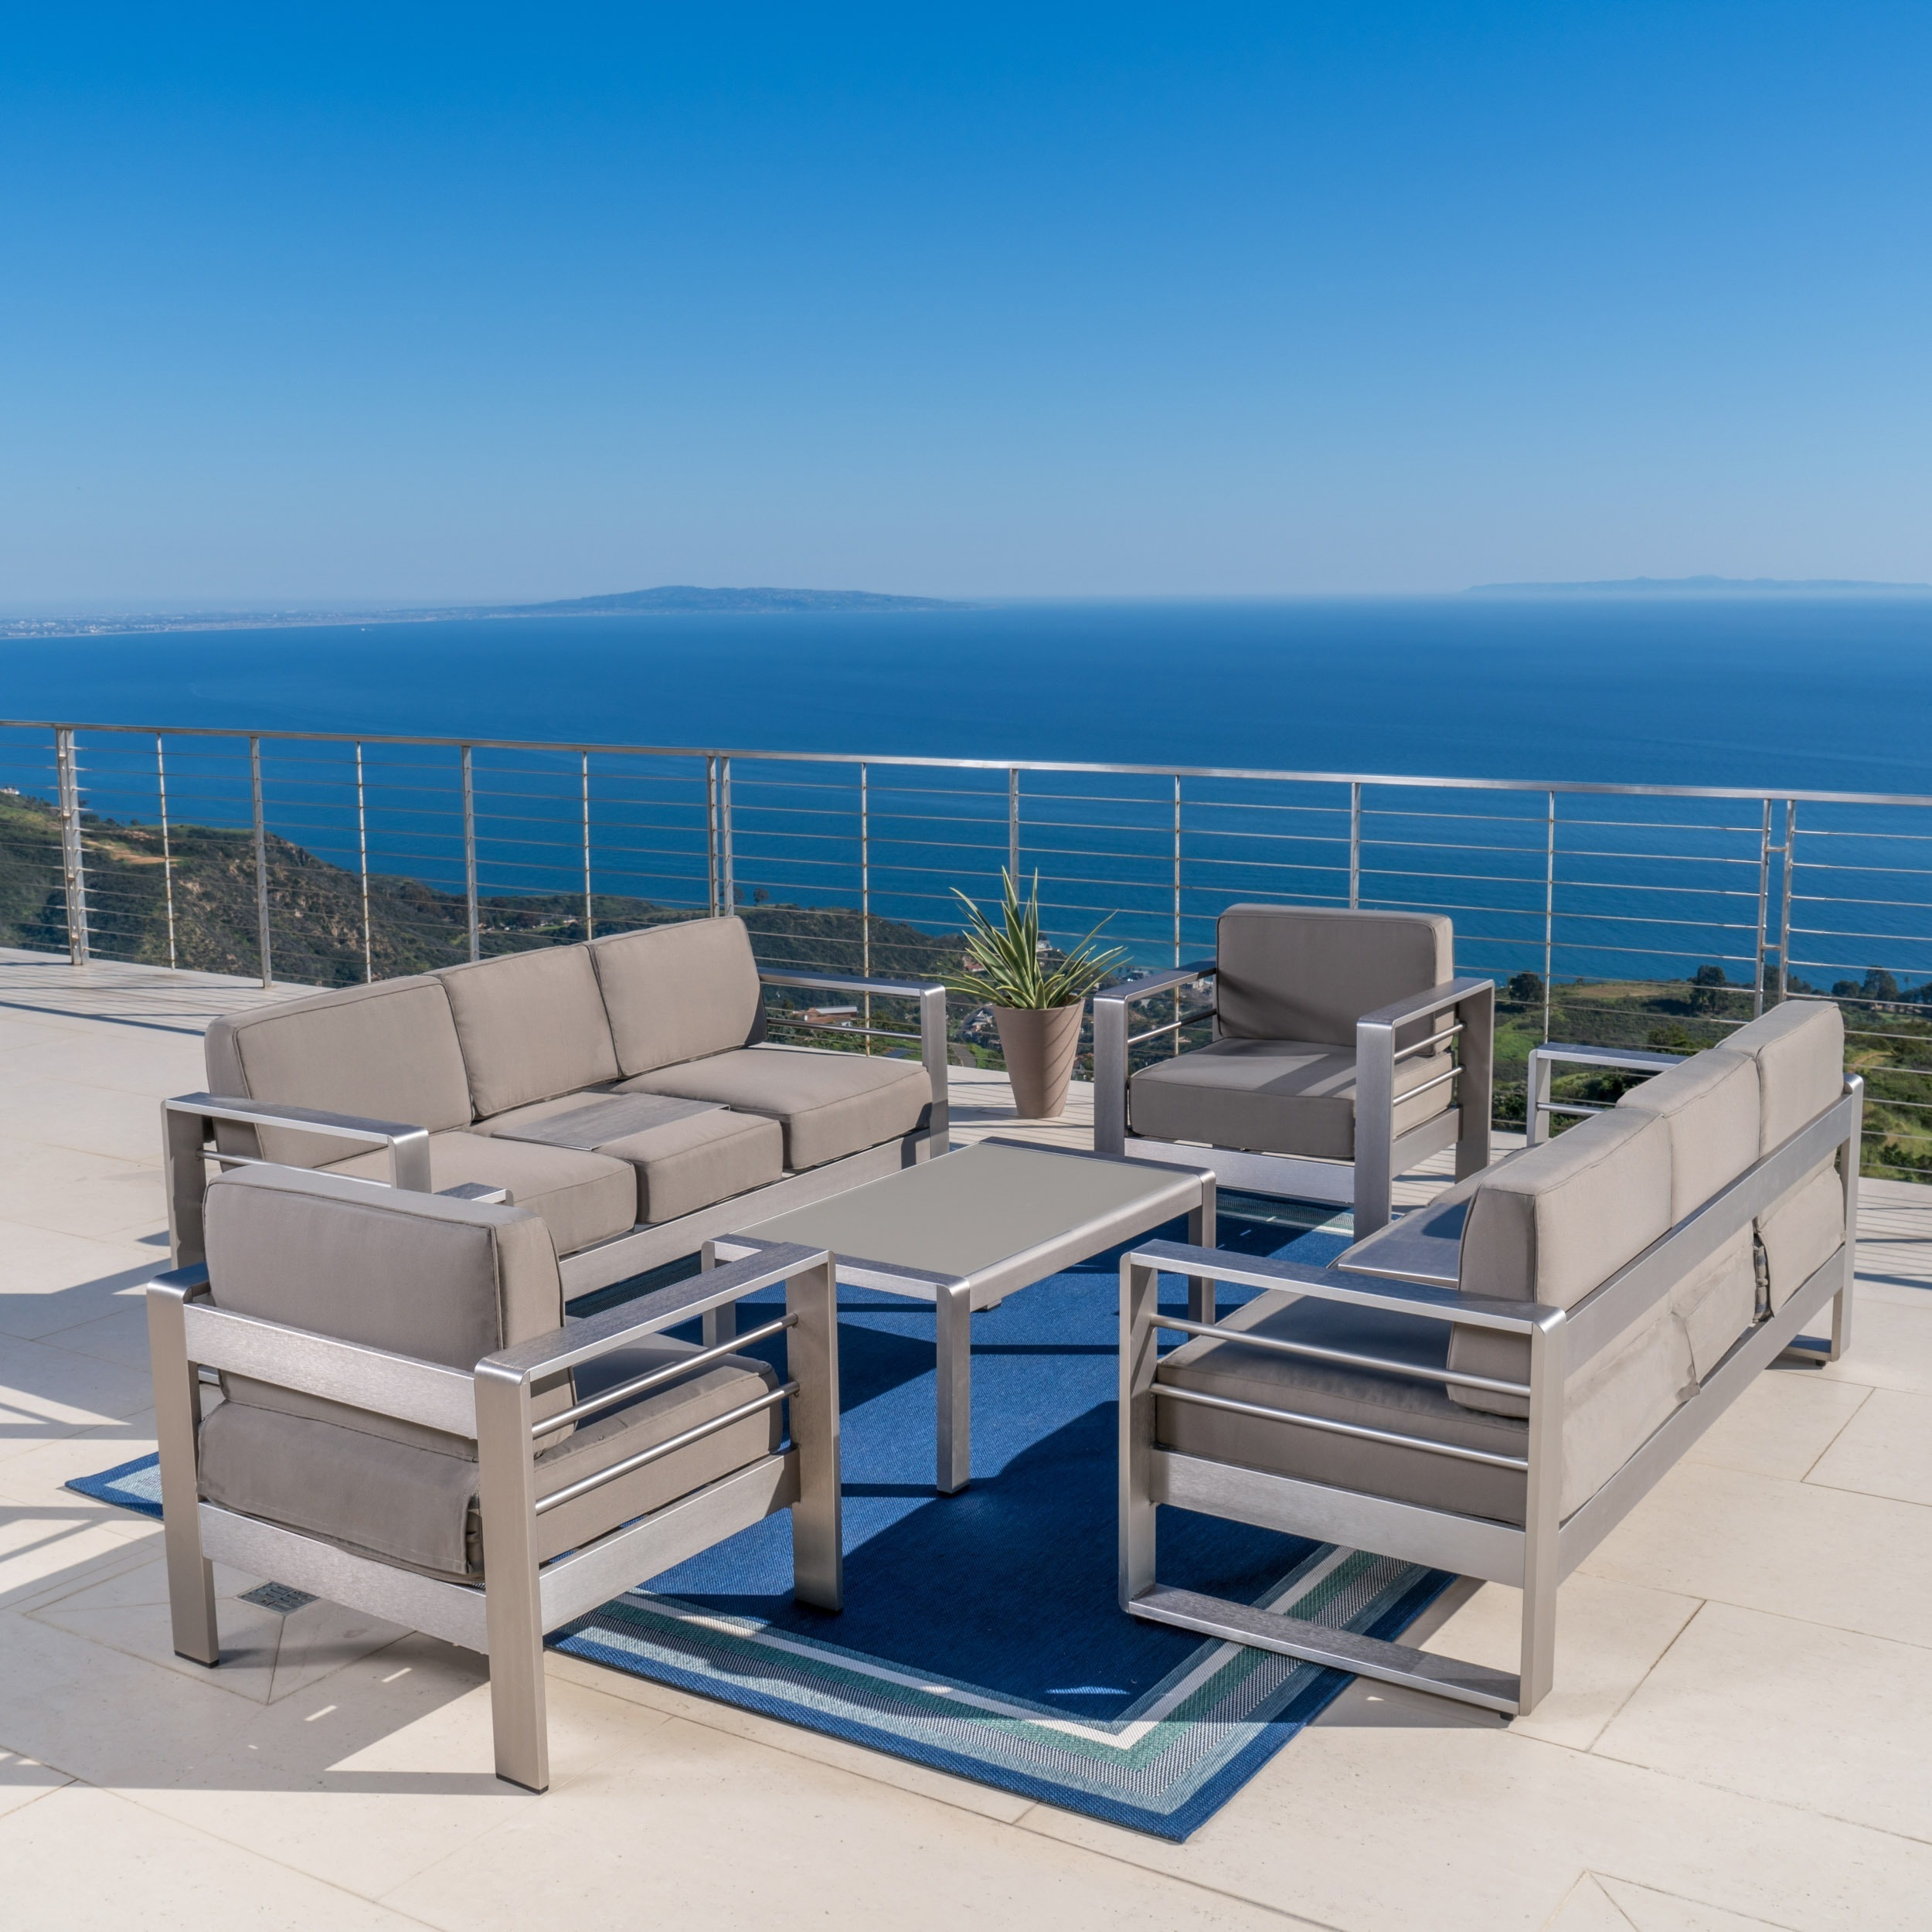 Furniture Cape Coral cape coral outdoor aluminum 5 sofa set with cushions by